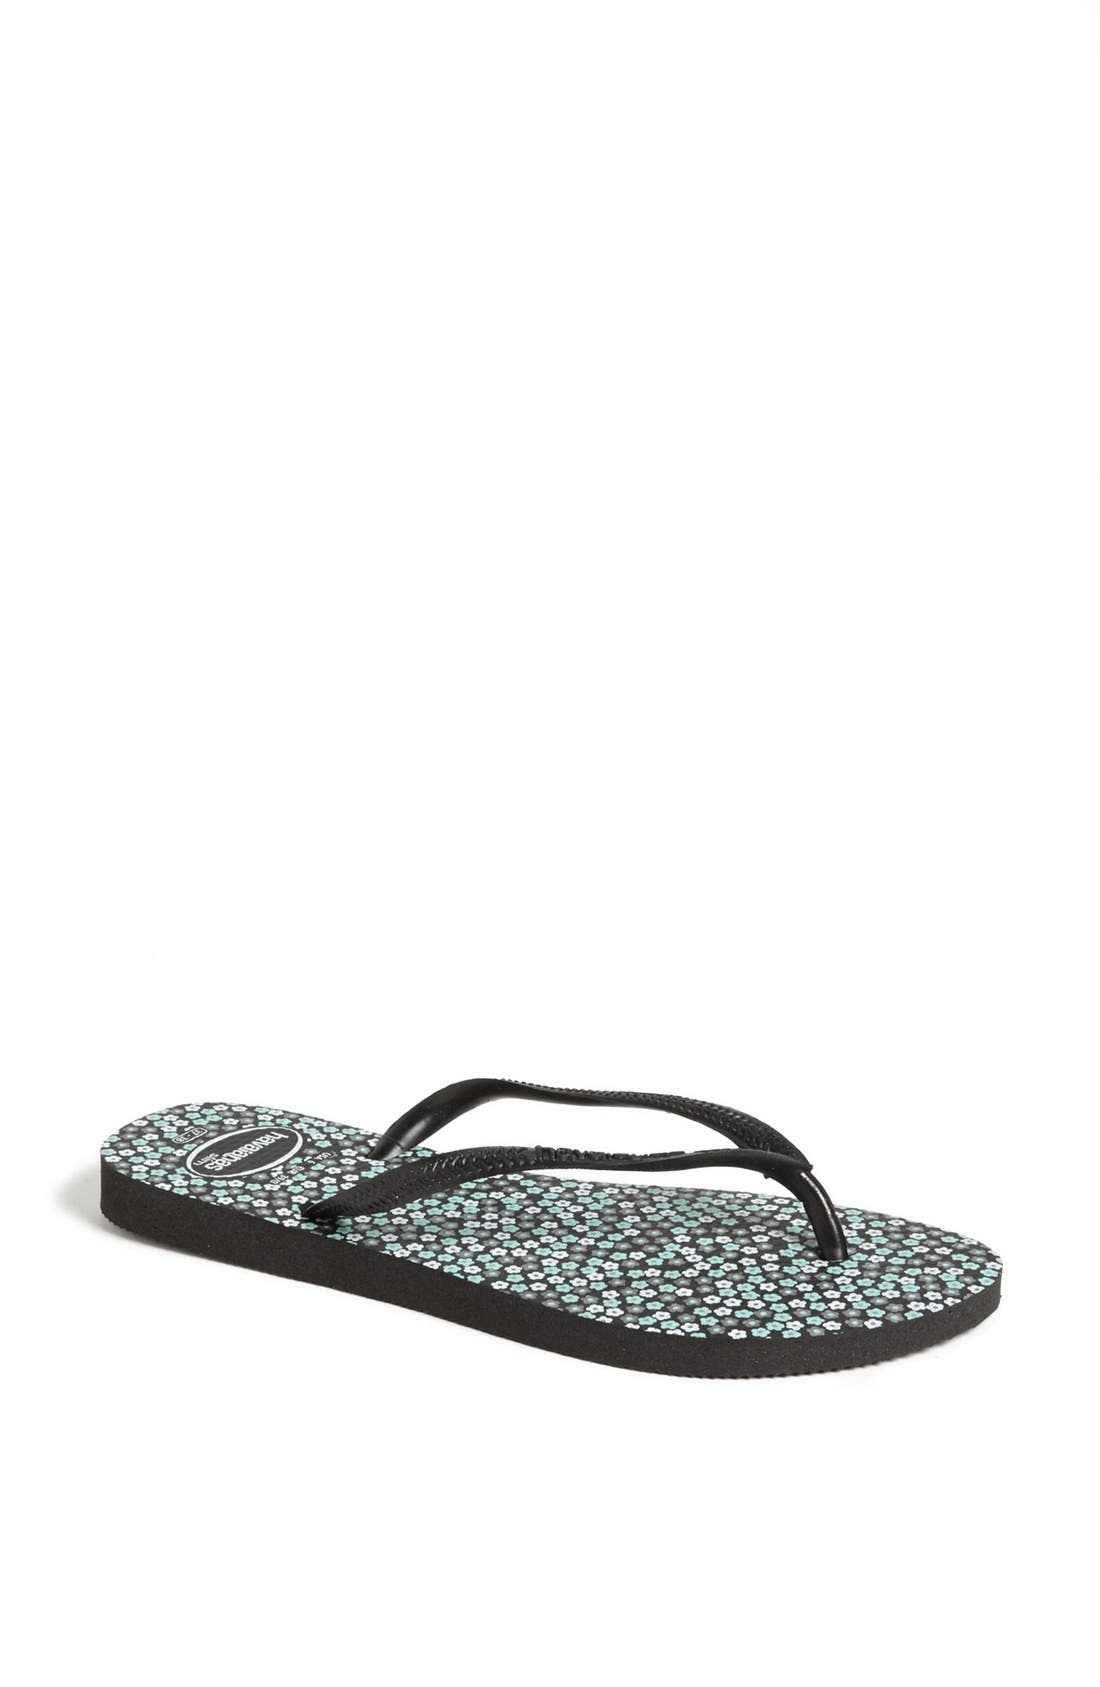 Alternate Image 1 Selected - Havaianas 'Sunny' Flip Flop (Women)